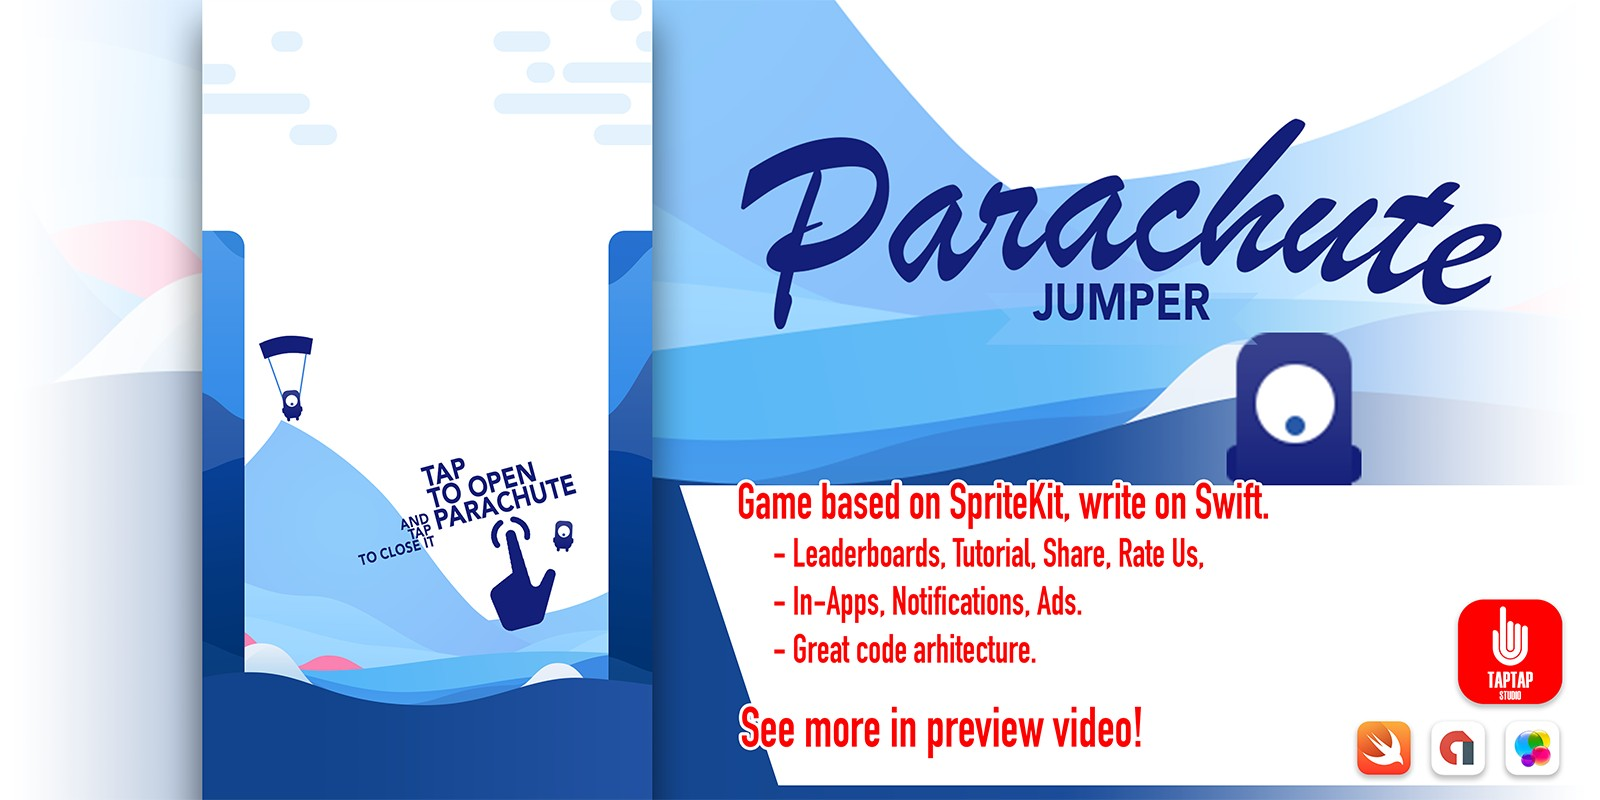 Parachute Jumper - iOS Source Code